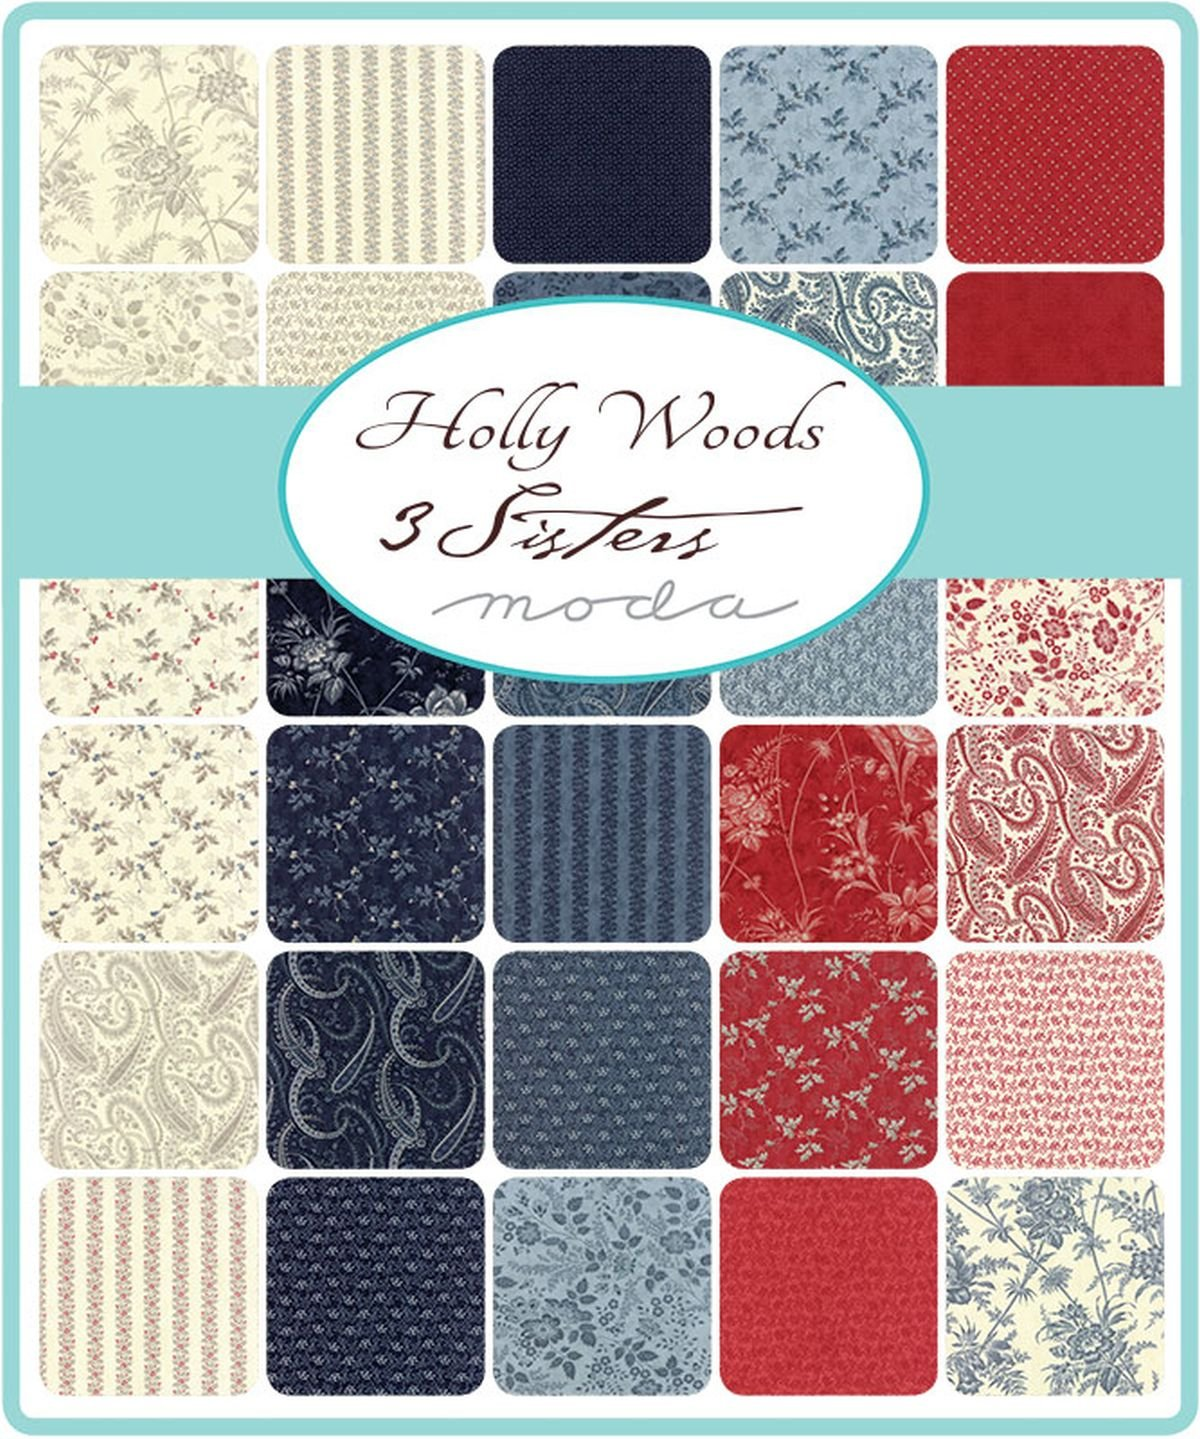 Holly Woods Mini Charm Pack by 3 Sisters; 42-2.5 Precut Fabric Quilt Squares